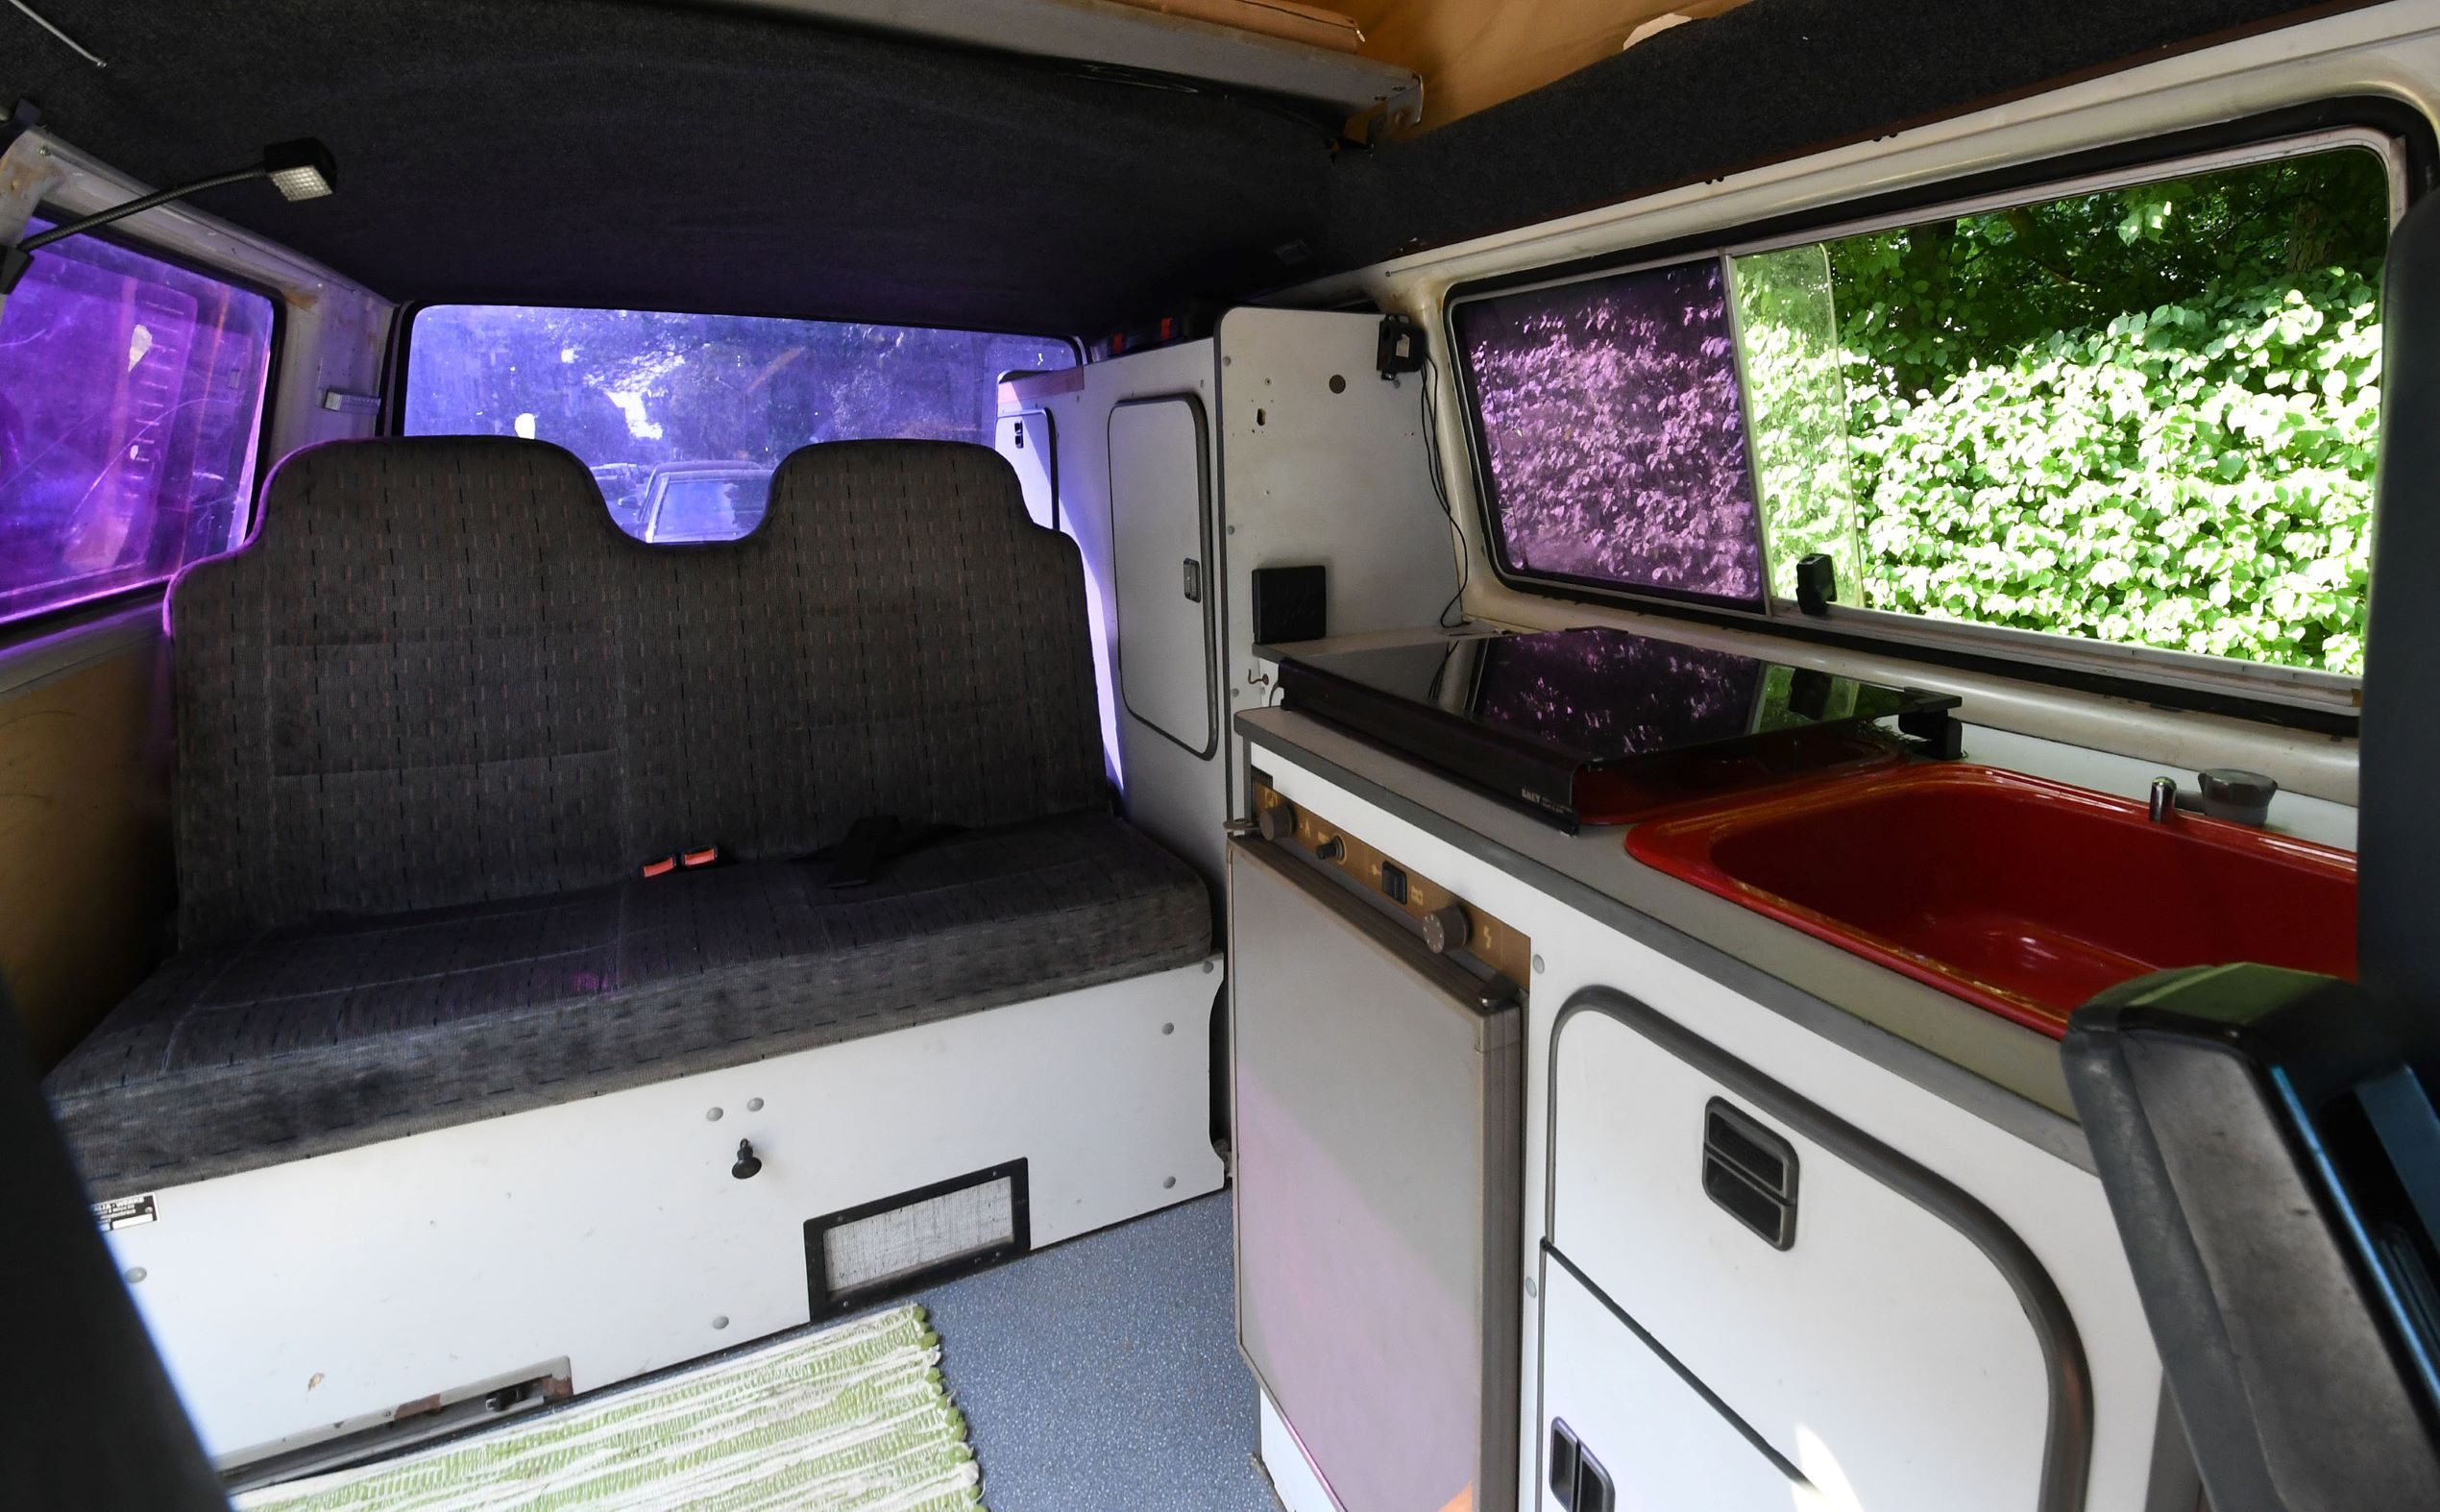 How Do You Put a Sink in a Camper Van? | MotorBiscuit